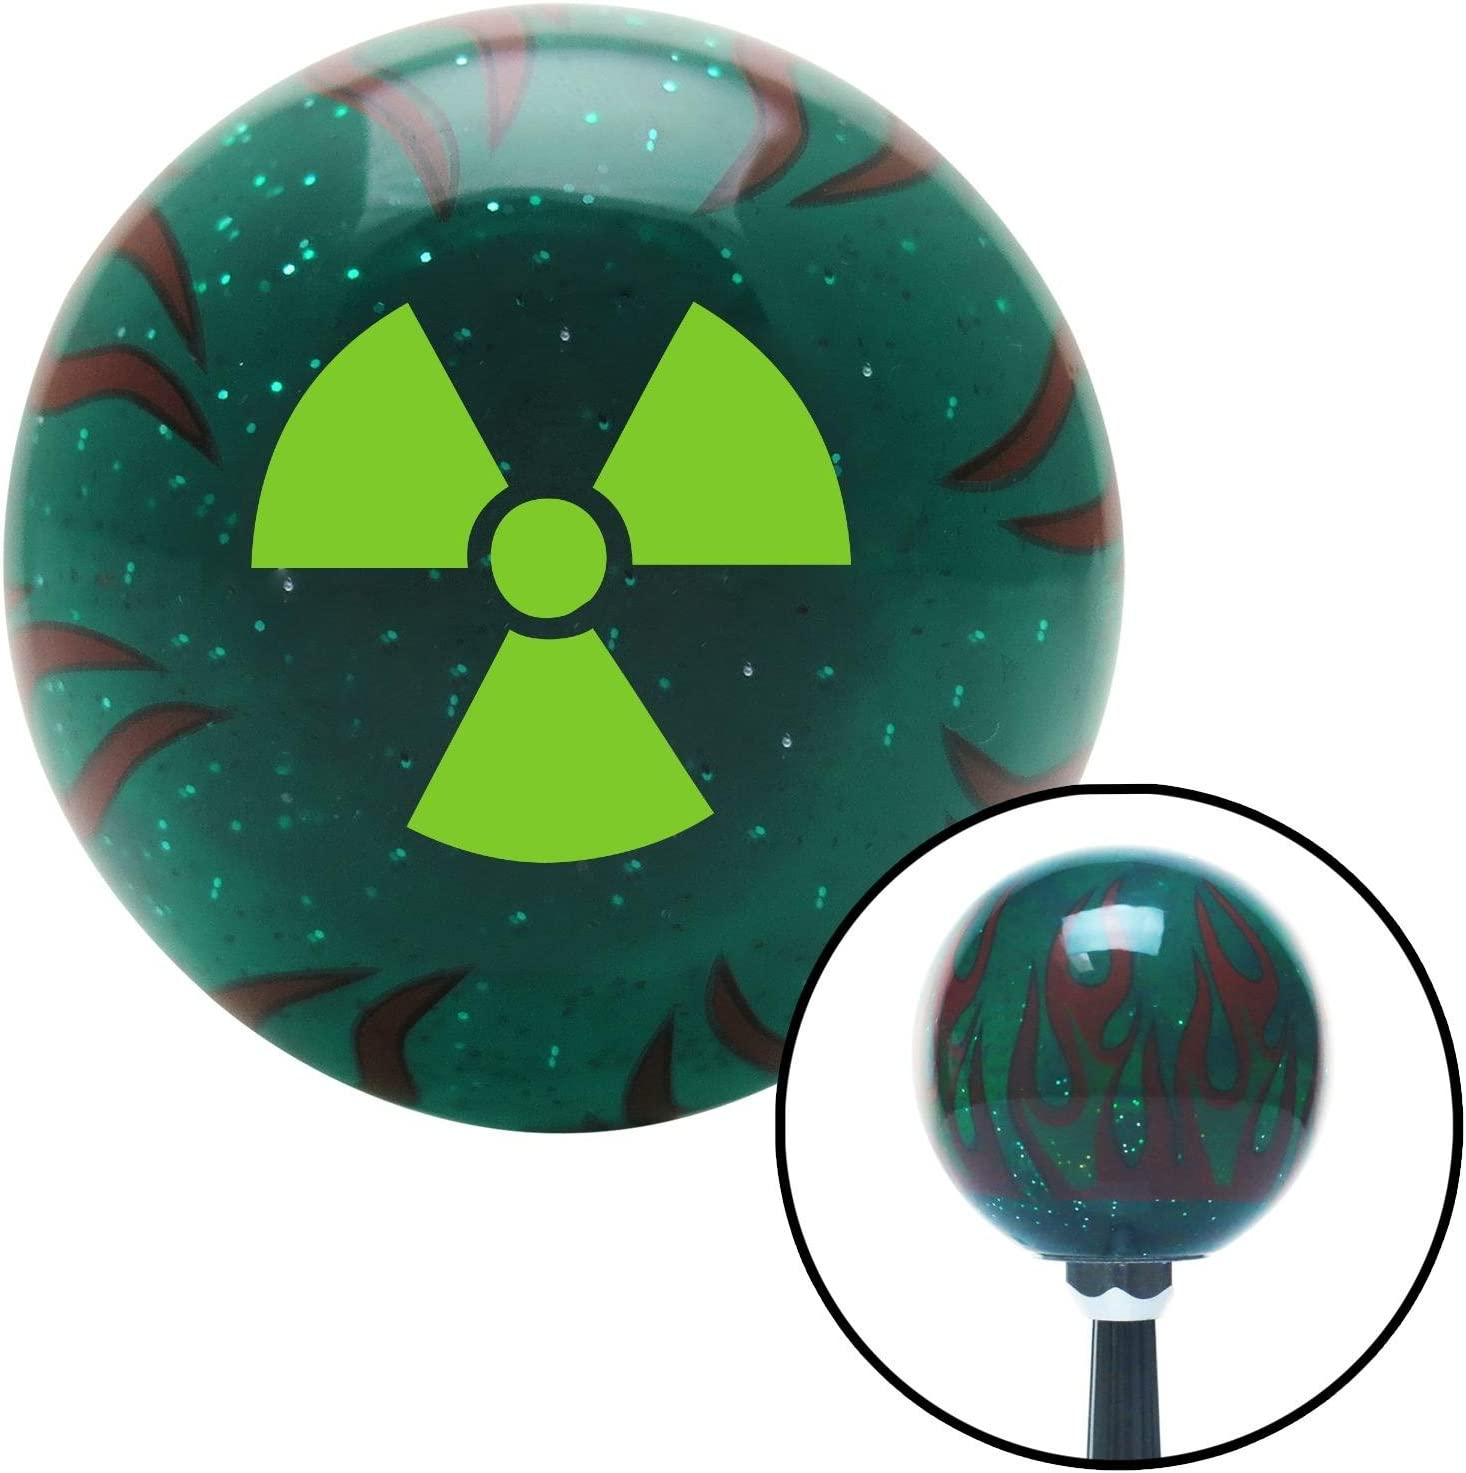 Yellow Symbol of Islam American Shifter 263531 Green Flame Metal Flake Shift Knob with M16 x 1.5 Insert